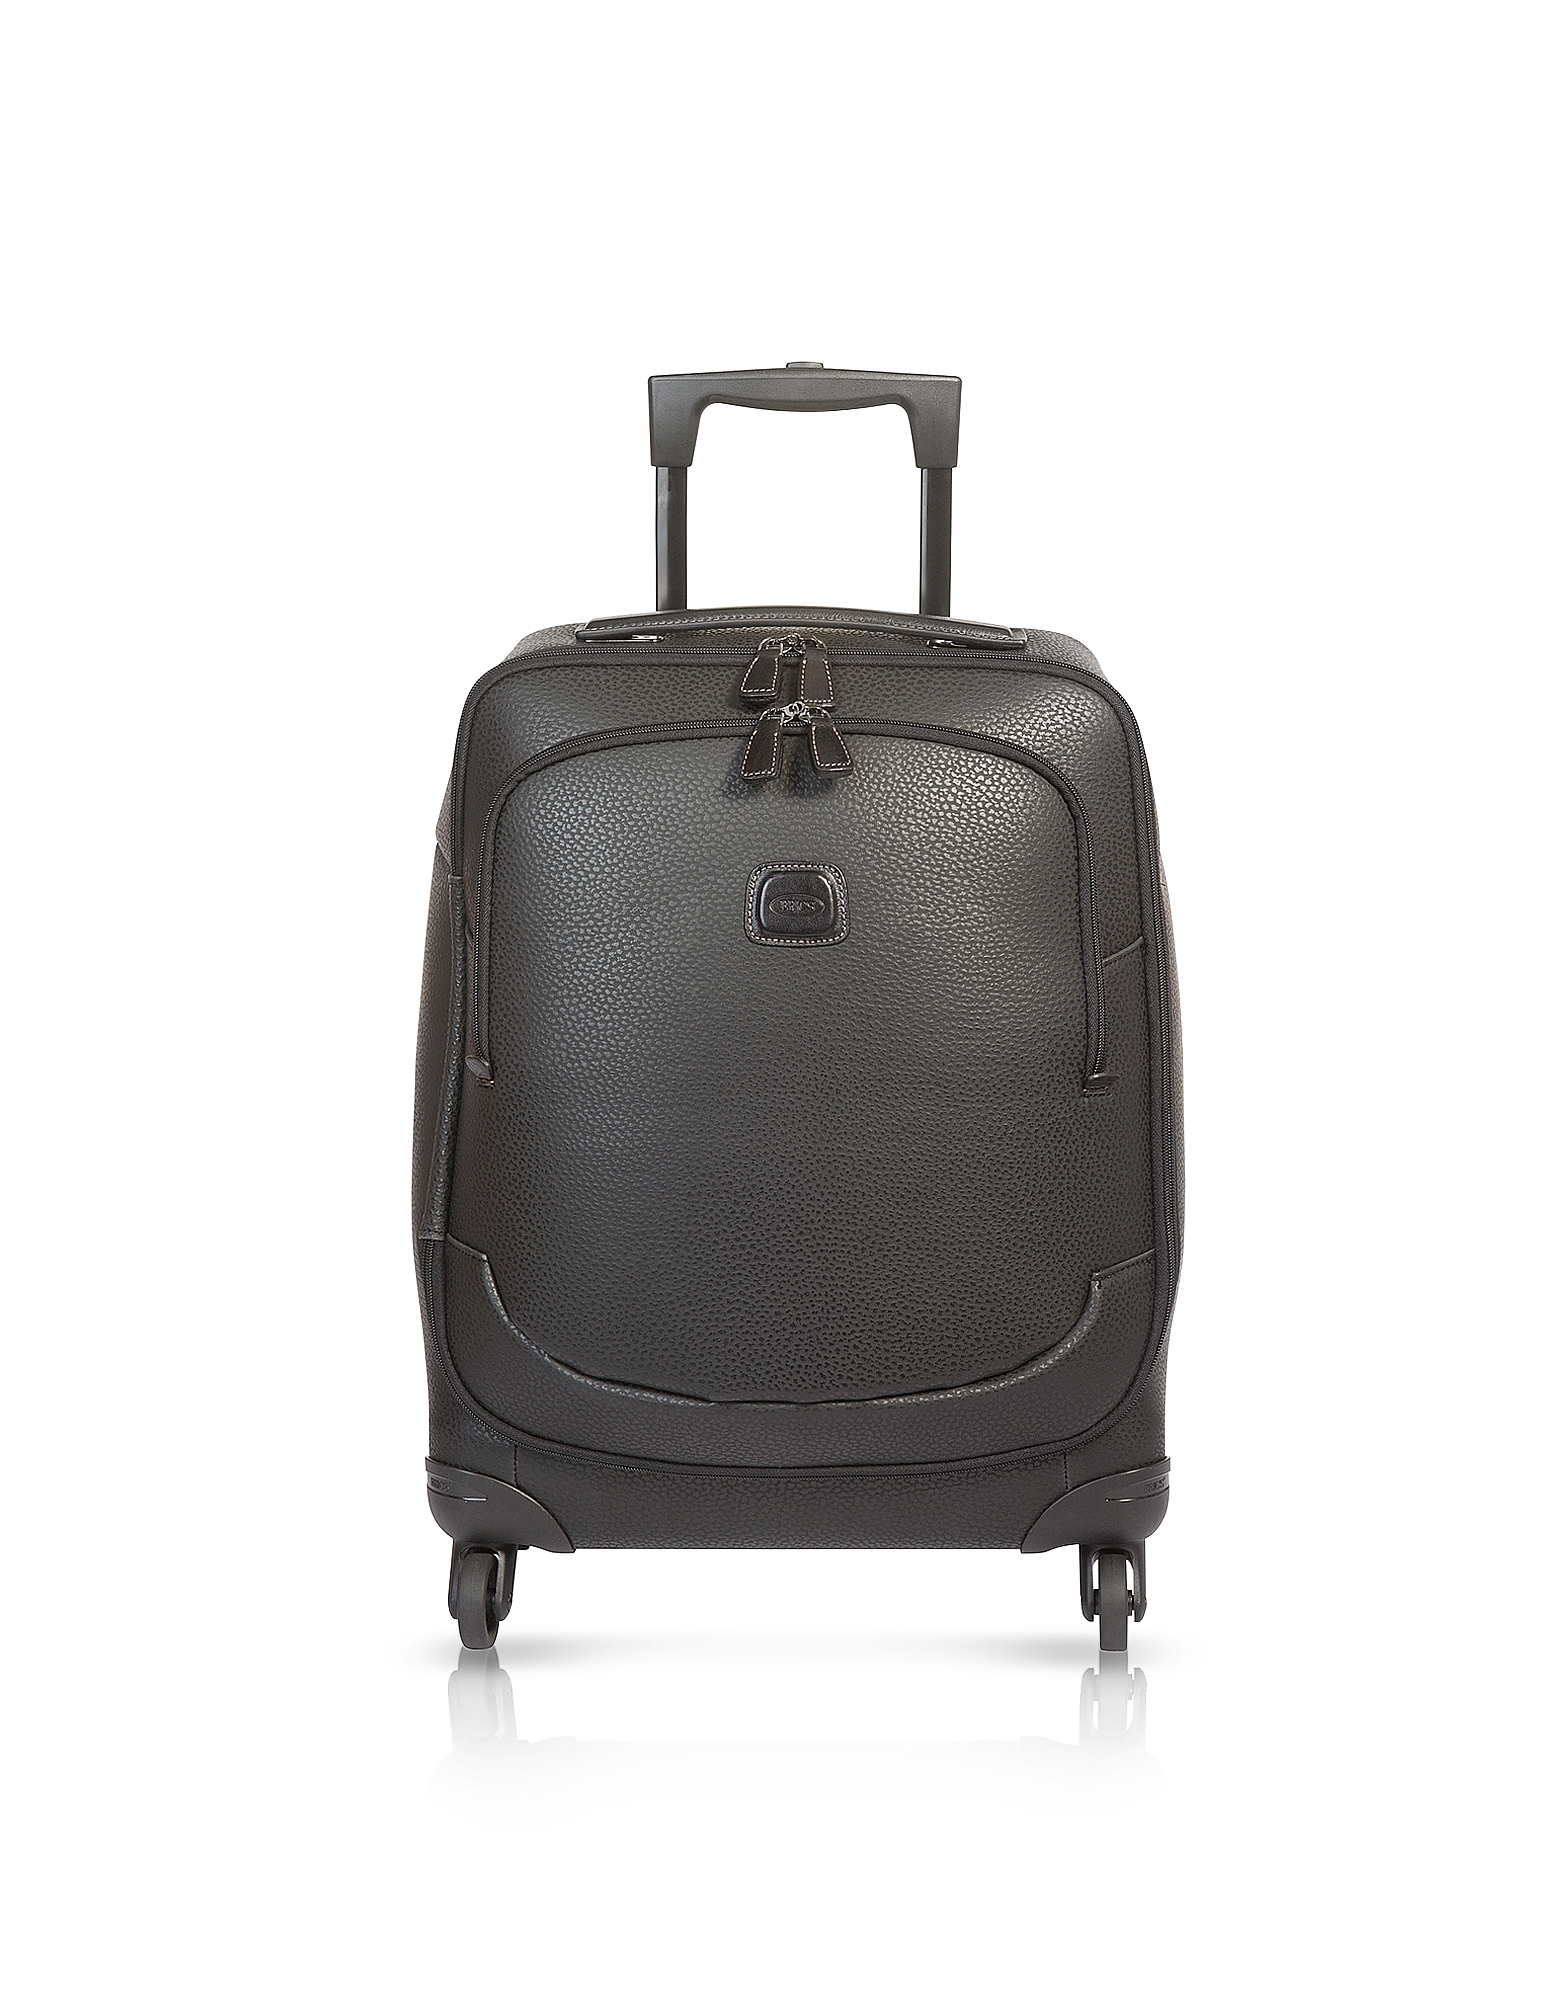 Bric's Travel Bags, Magellano Black 21in Ultra Light Cabin Suitcase